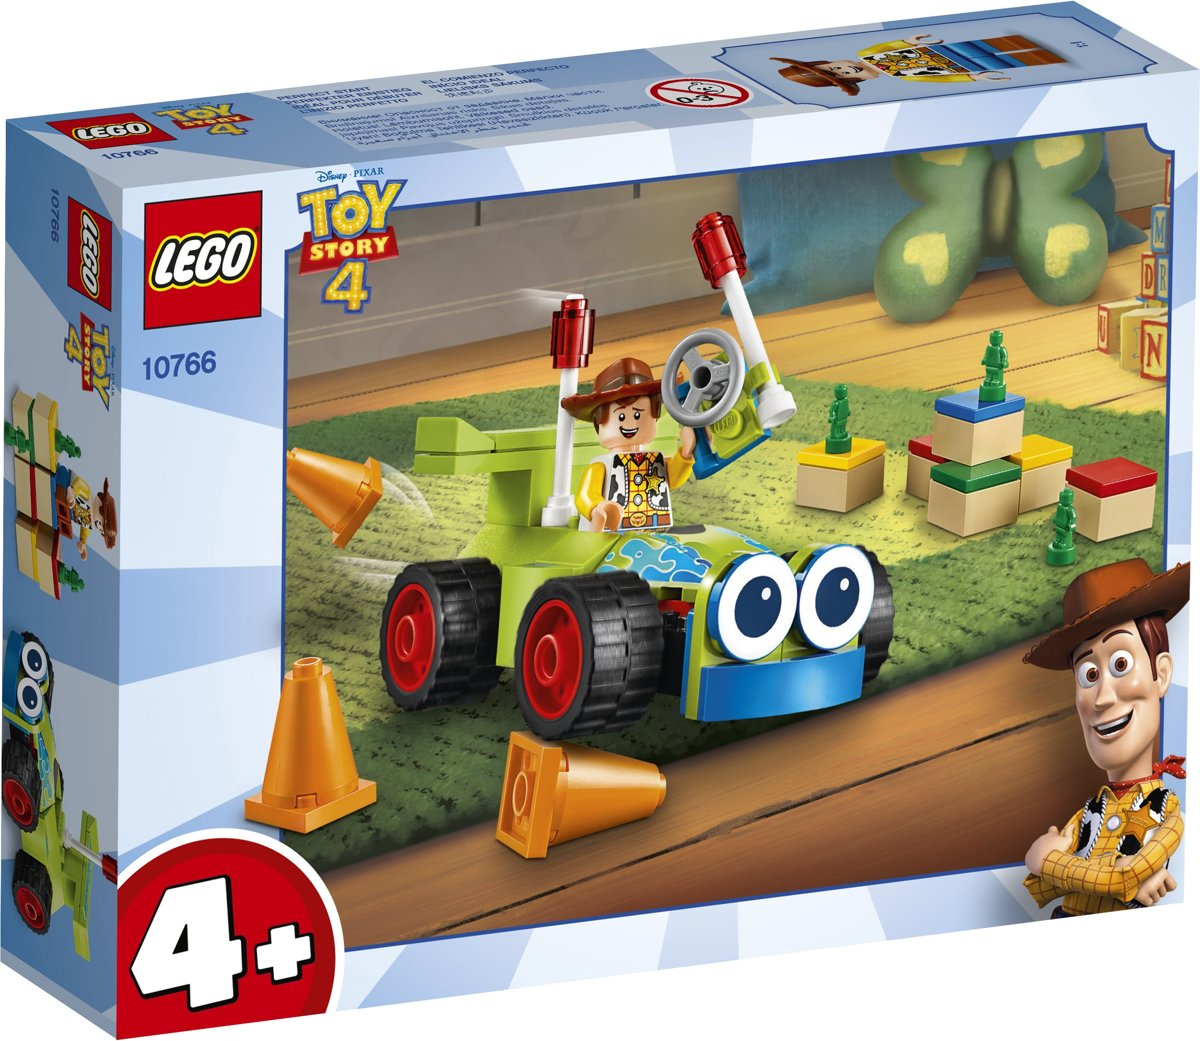 LEGO 4+ Toy Story 4 Woody & RC - 10766